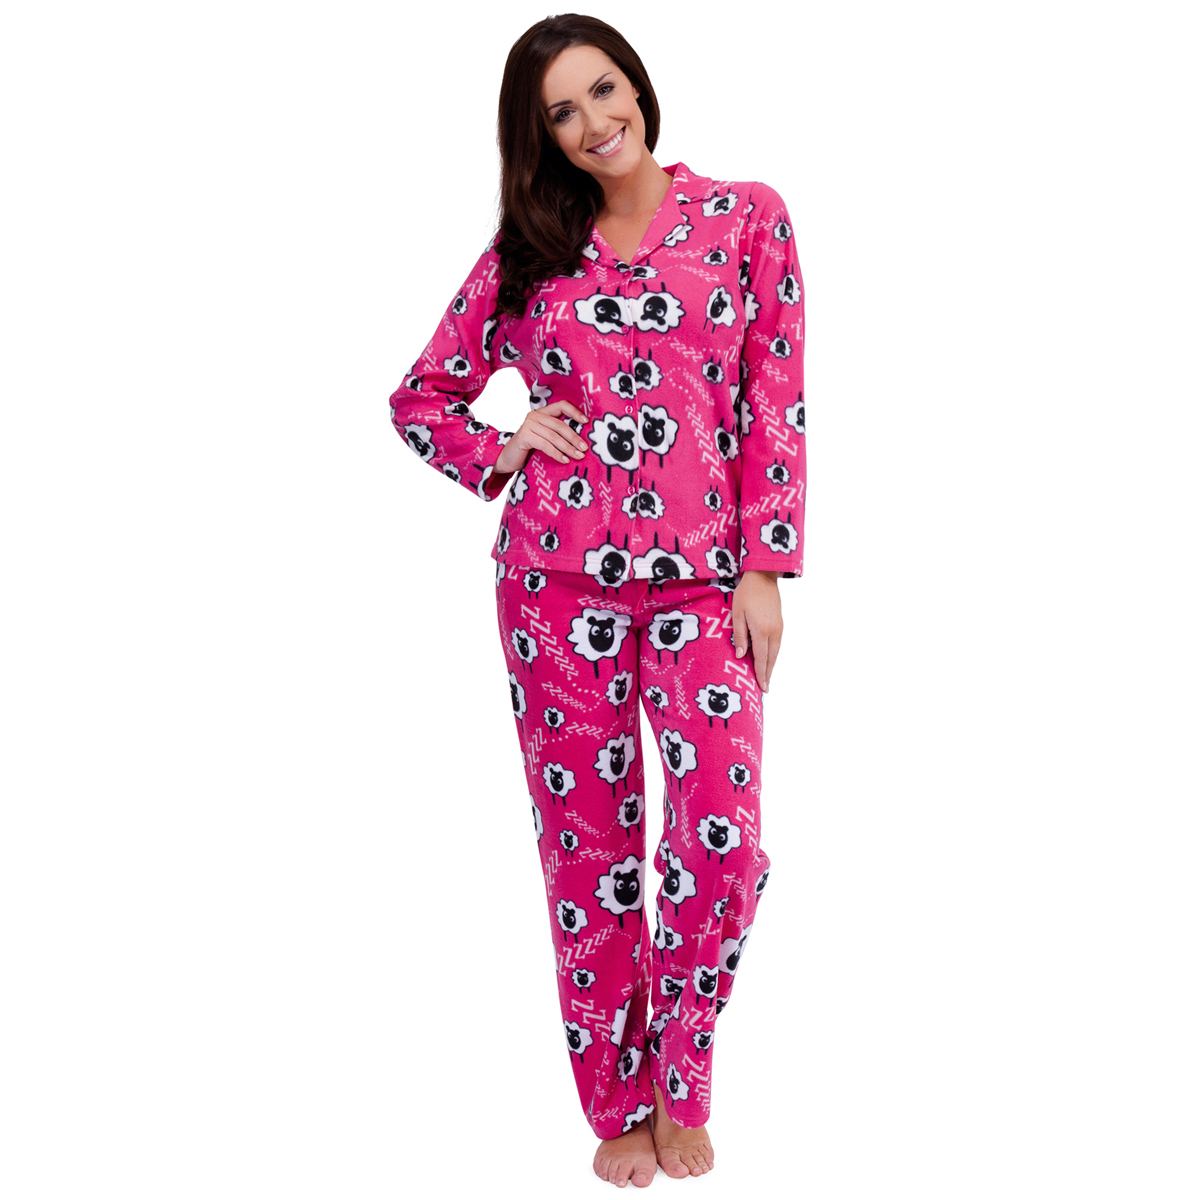 Enjoy beauty sleep in style with our great range of women's pyjamas. Whether you're looking for full-length cotton or short styles, we've got it all.